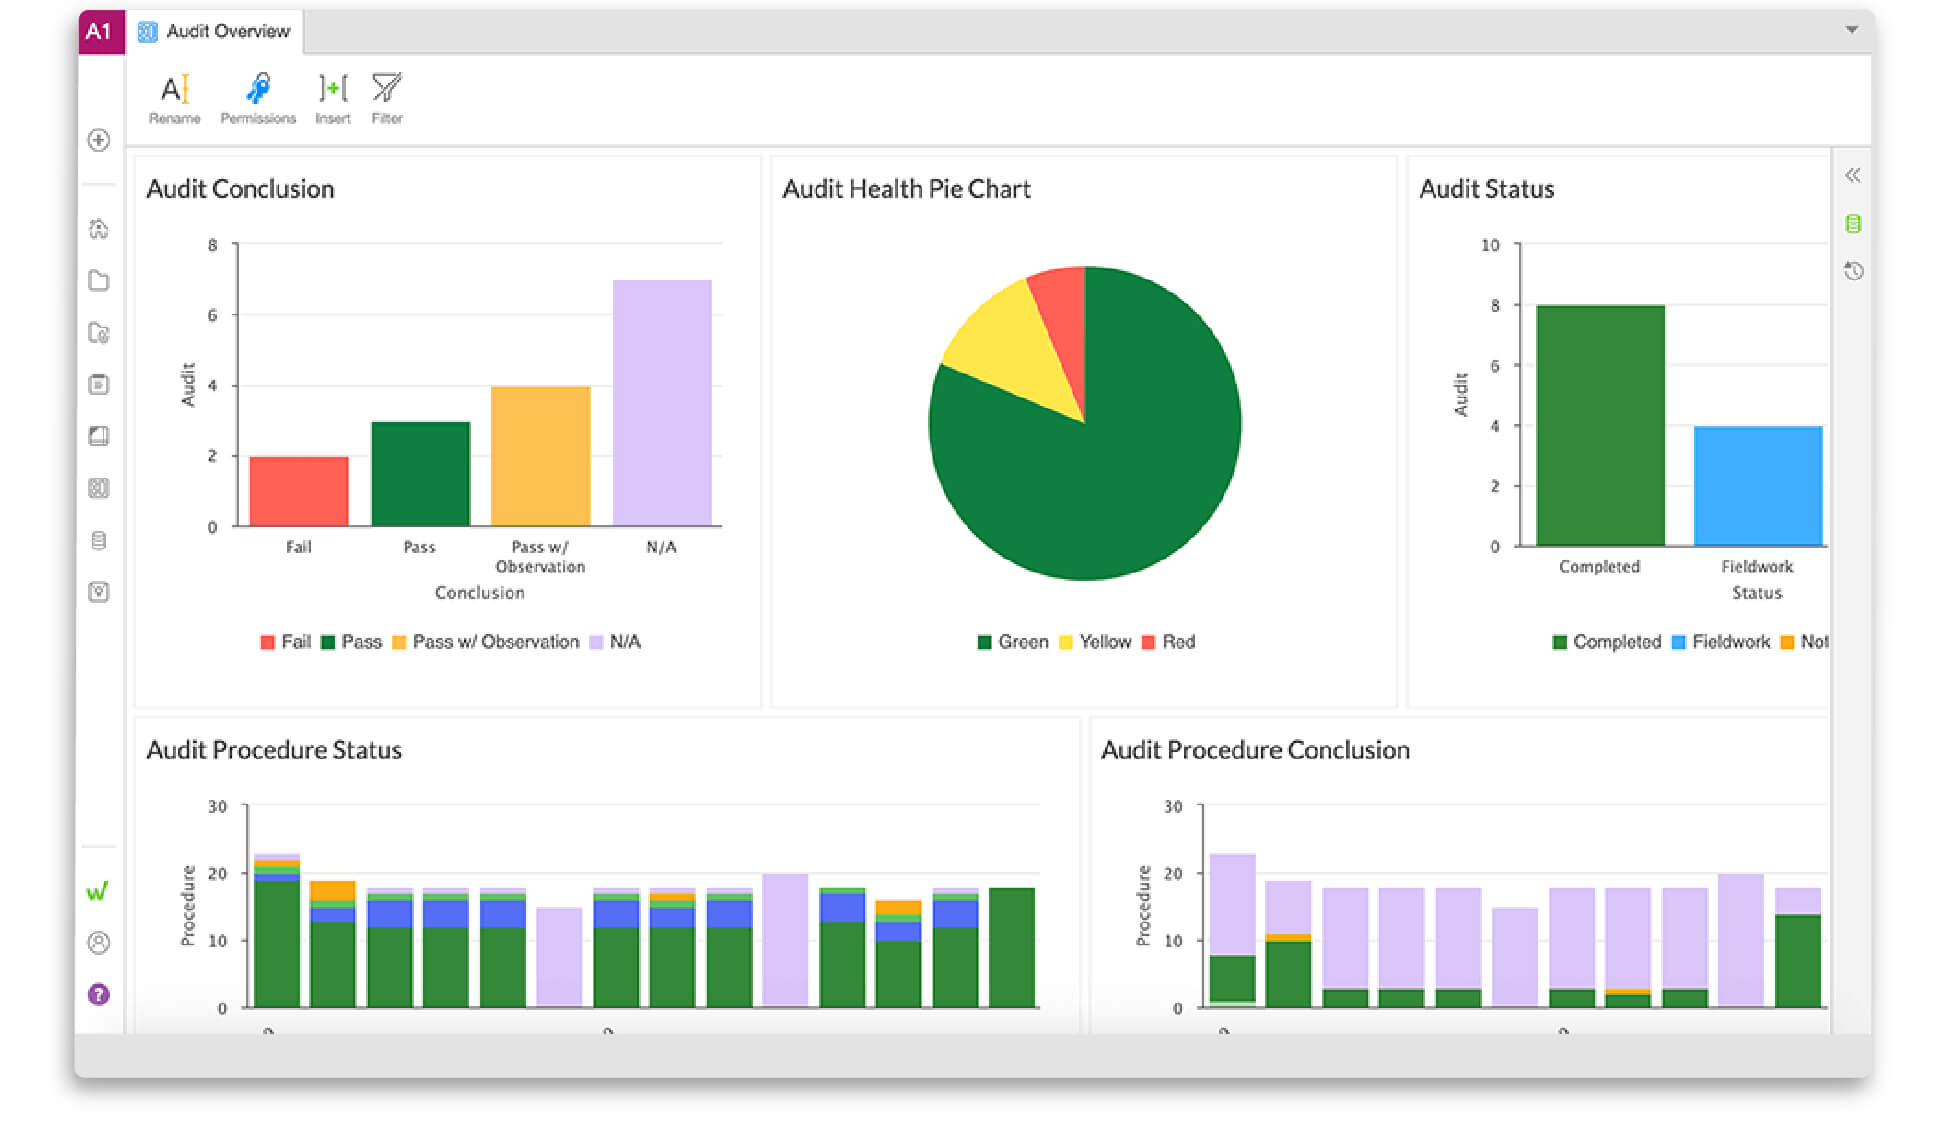 audit overview